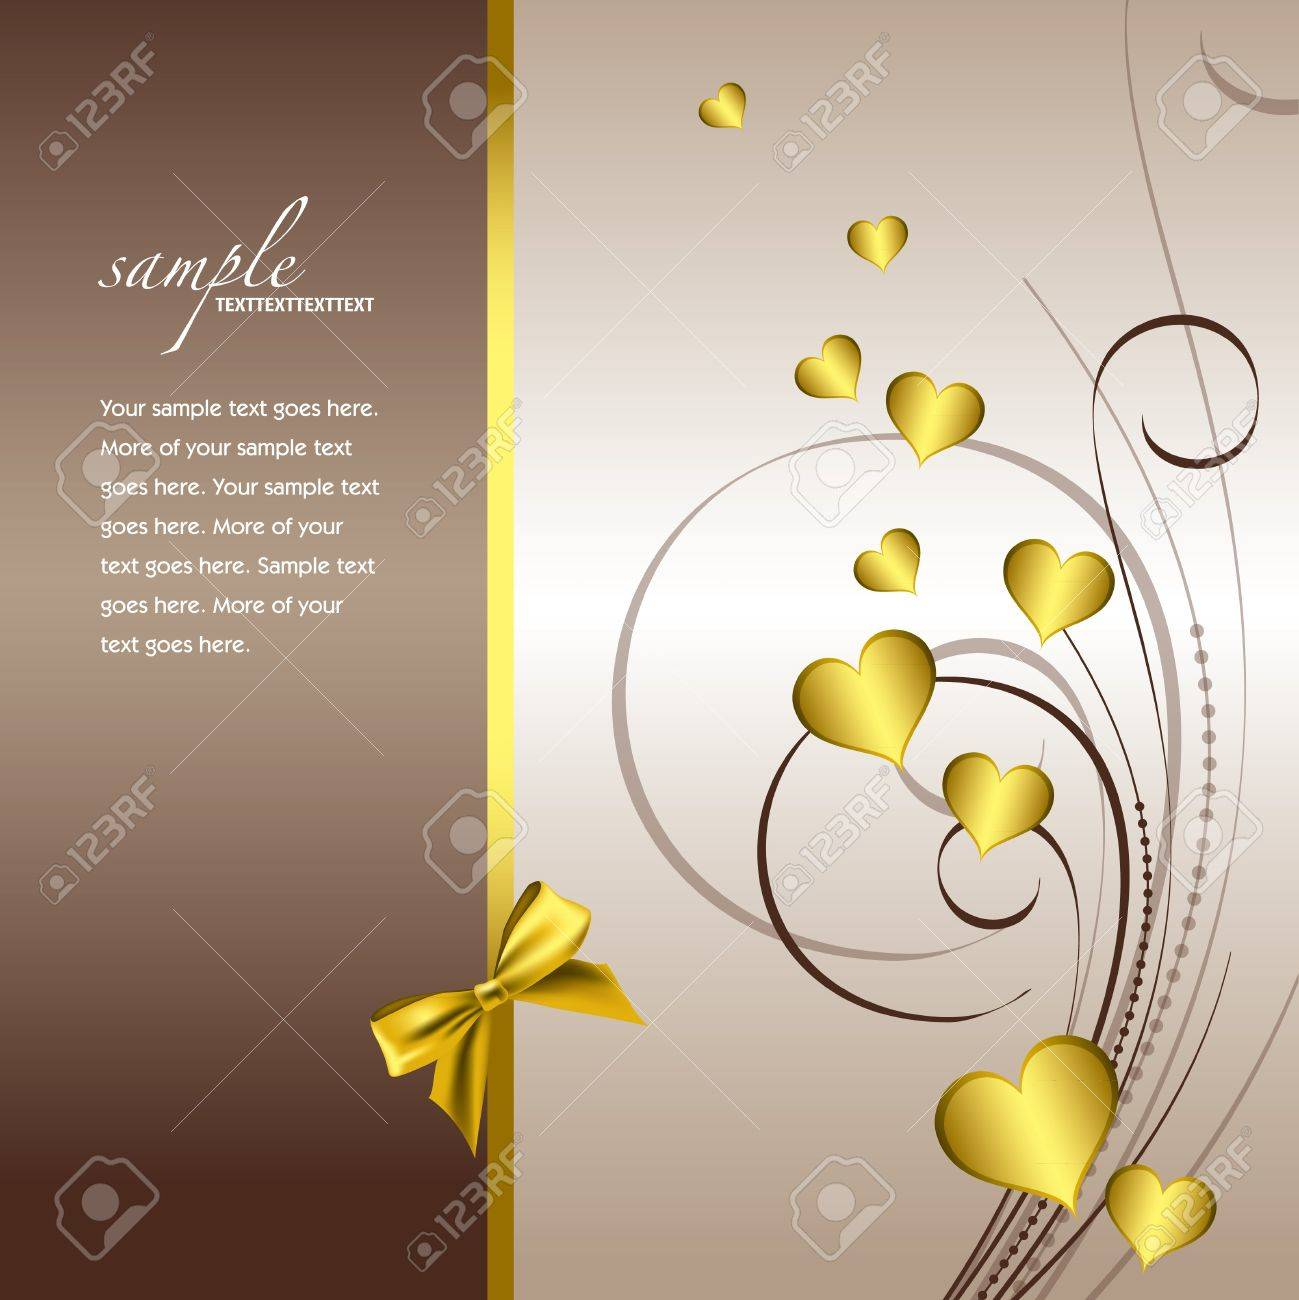 Valentines Day Background Stock Vector - 17373548